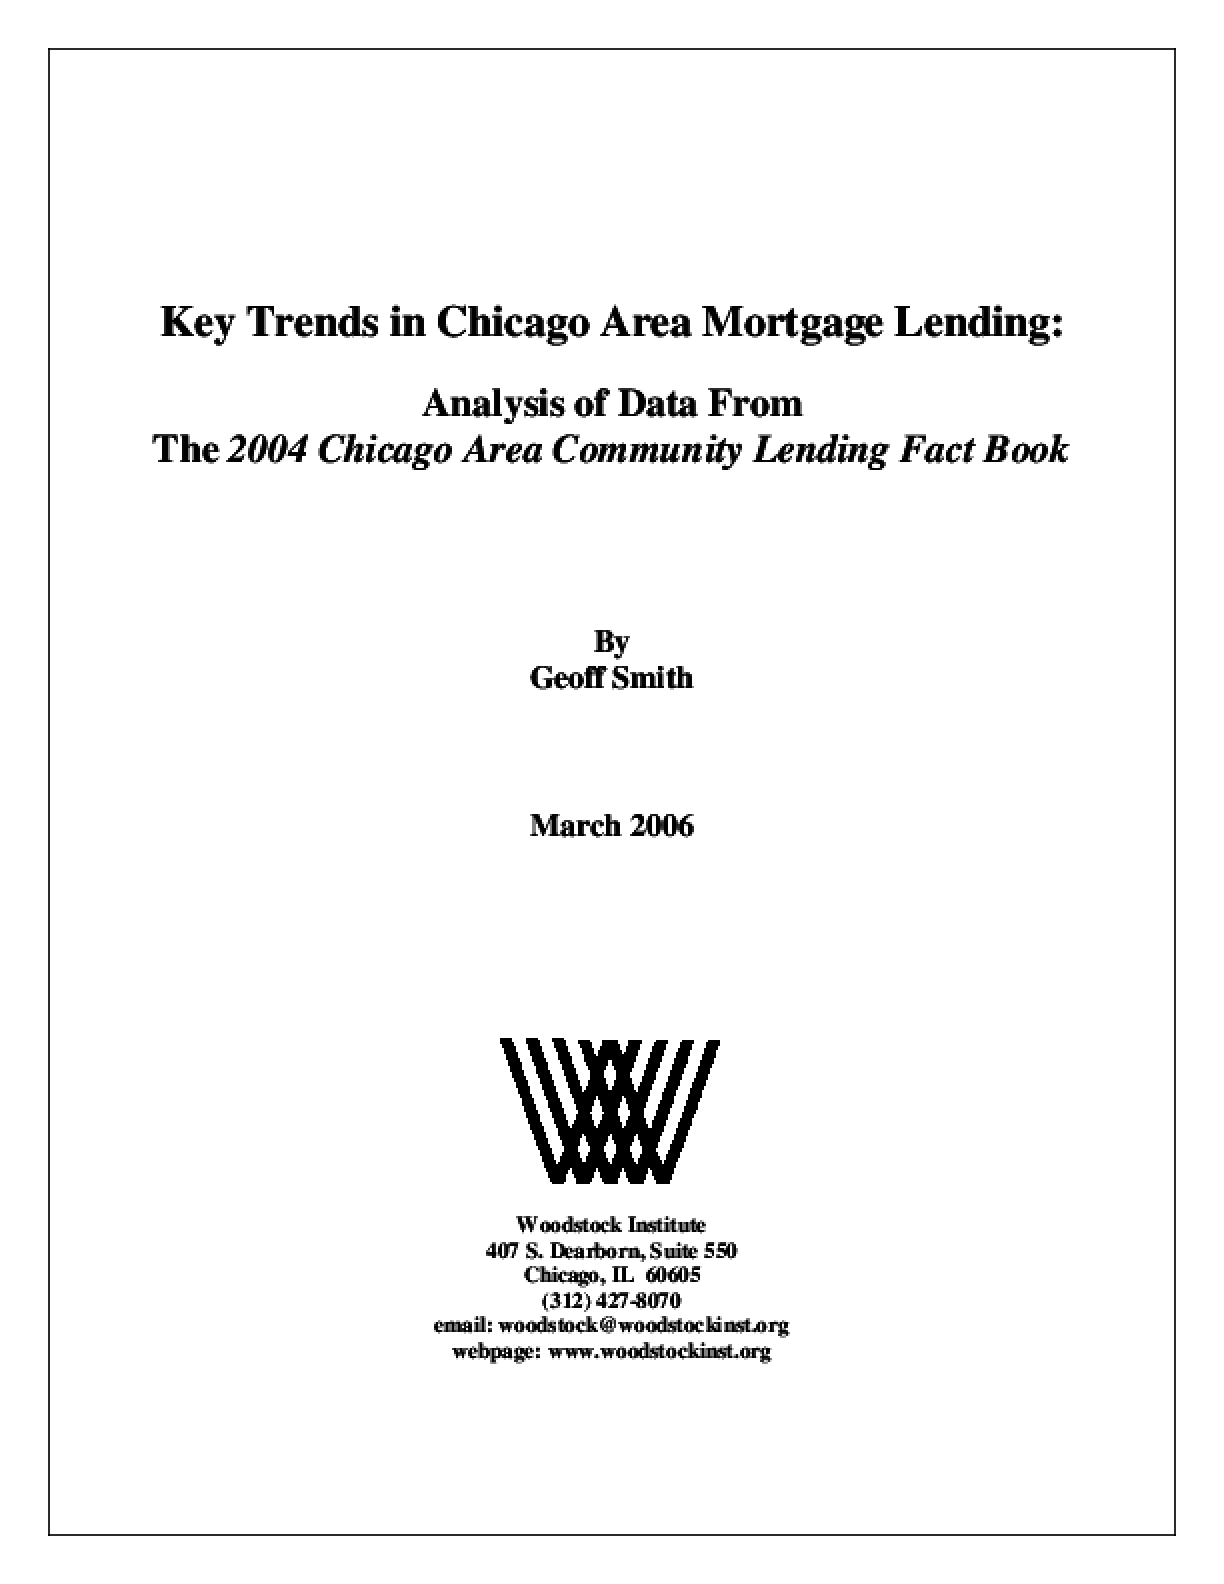 Key Trends in Chicago Area Mortgage Lending: Analysis of Data From the 2004 Chicago Area Community